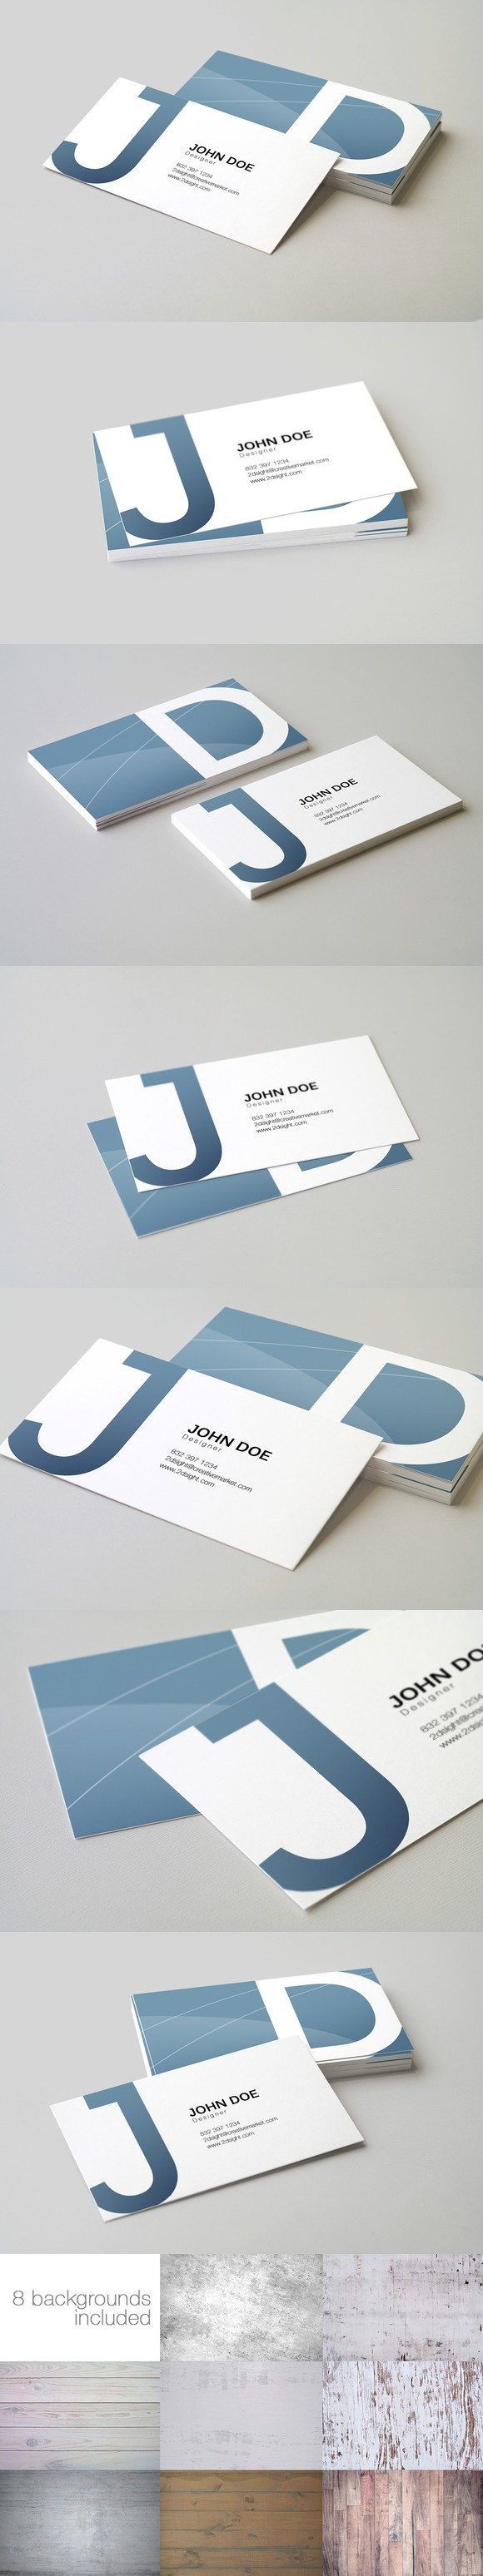 90x50 business card mockup pinterest 90x50 business card mockup product mockups 700 reheart Choice Image